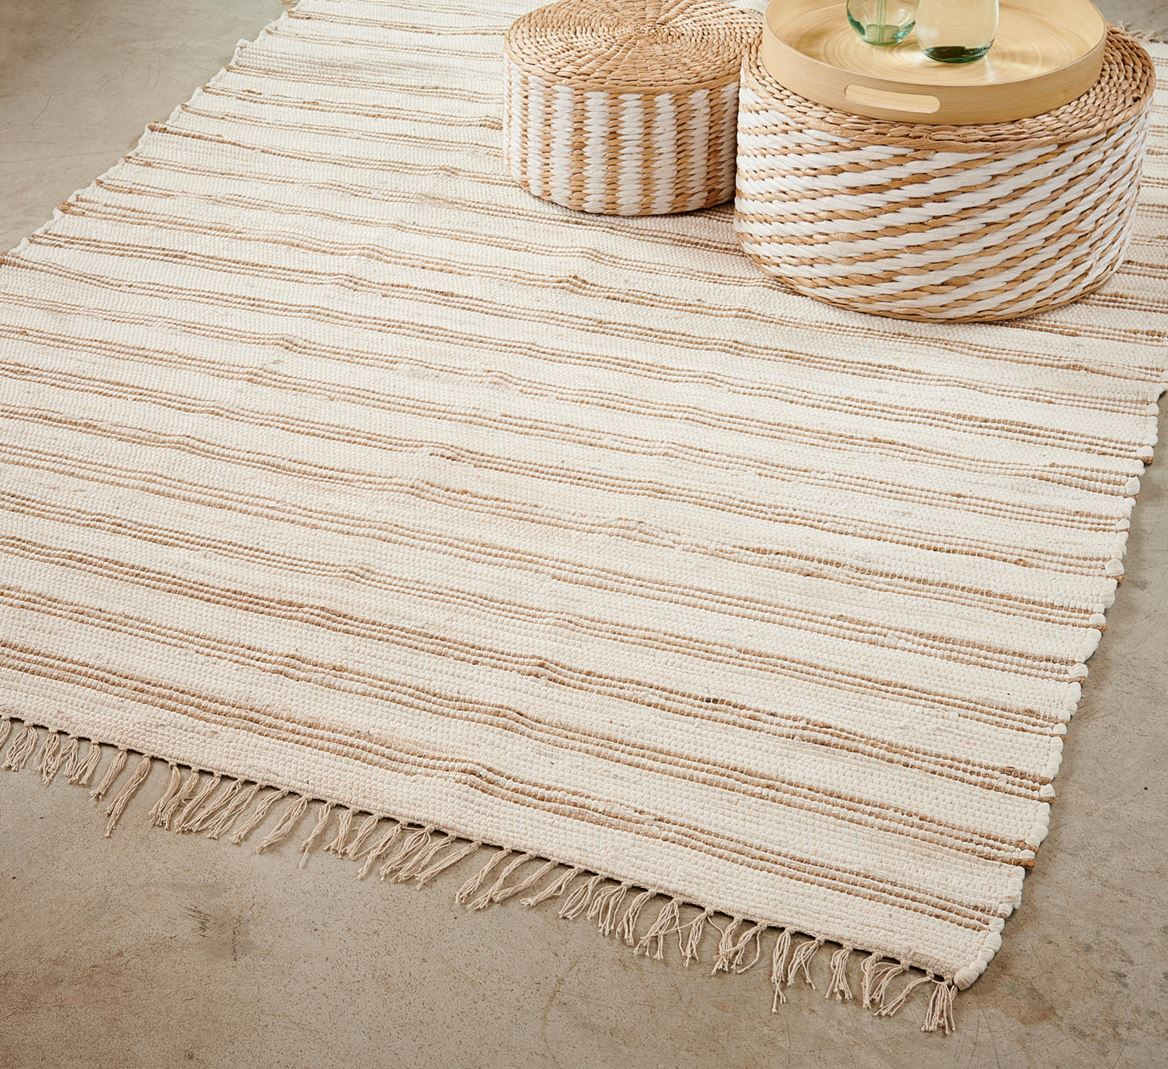 BASK Tapis naturel Larg. 140 x Long. 200 cm_bask-tapis-naturel-larg--140-x-long--200-cm